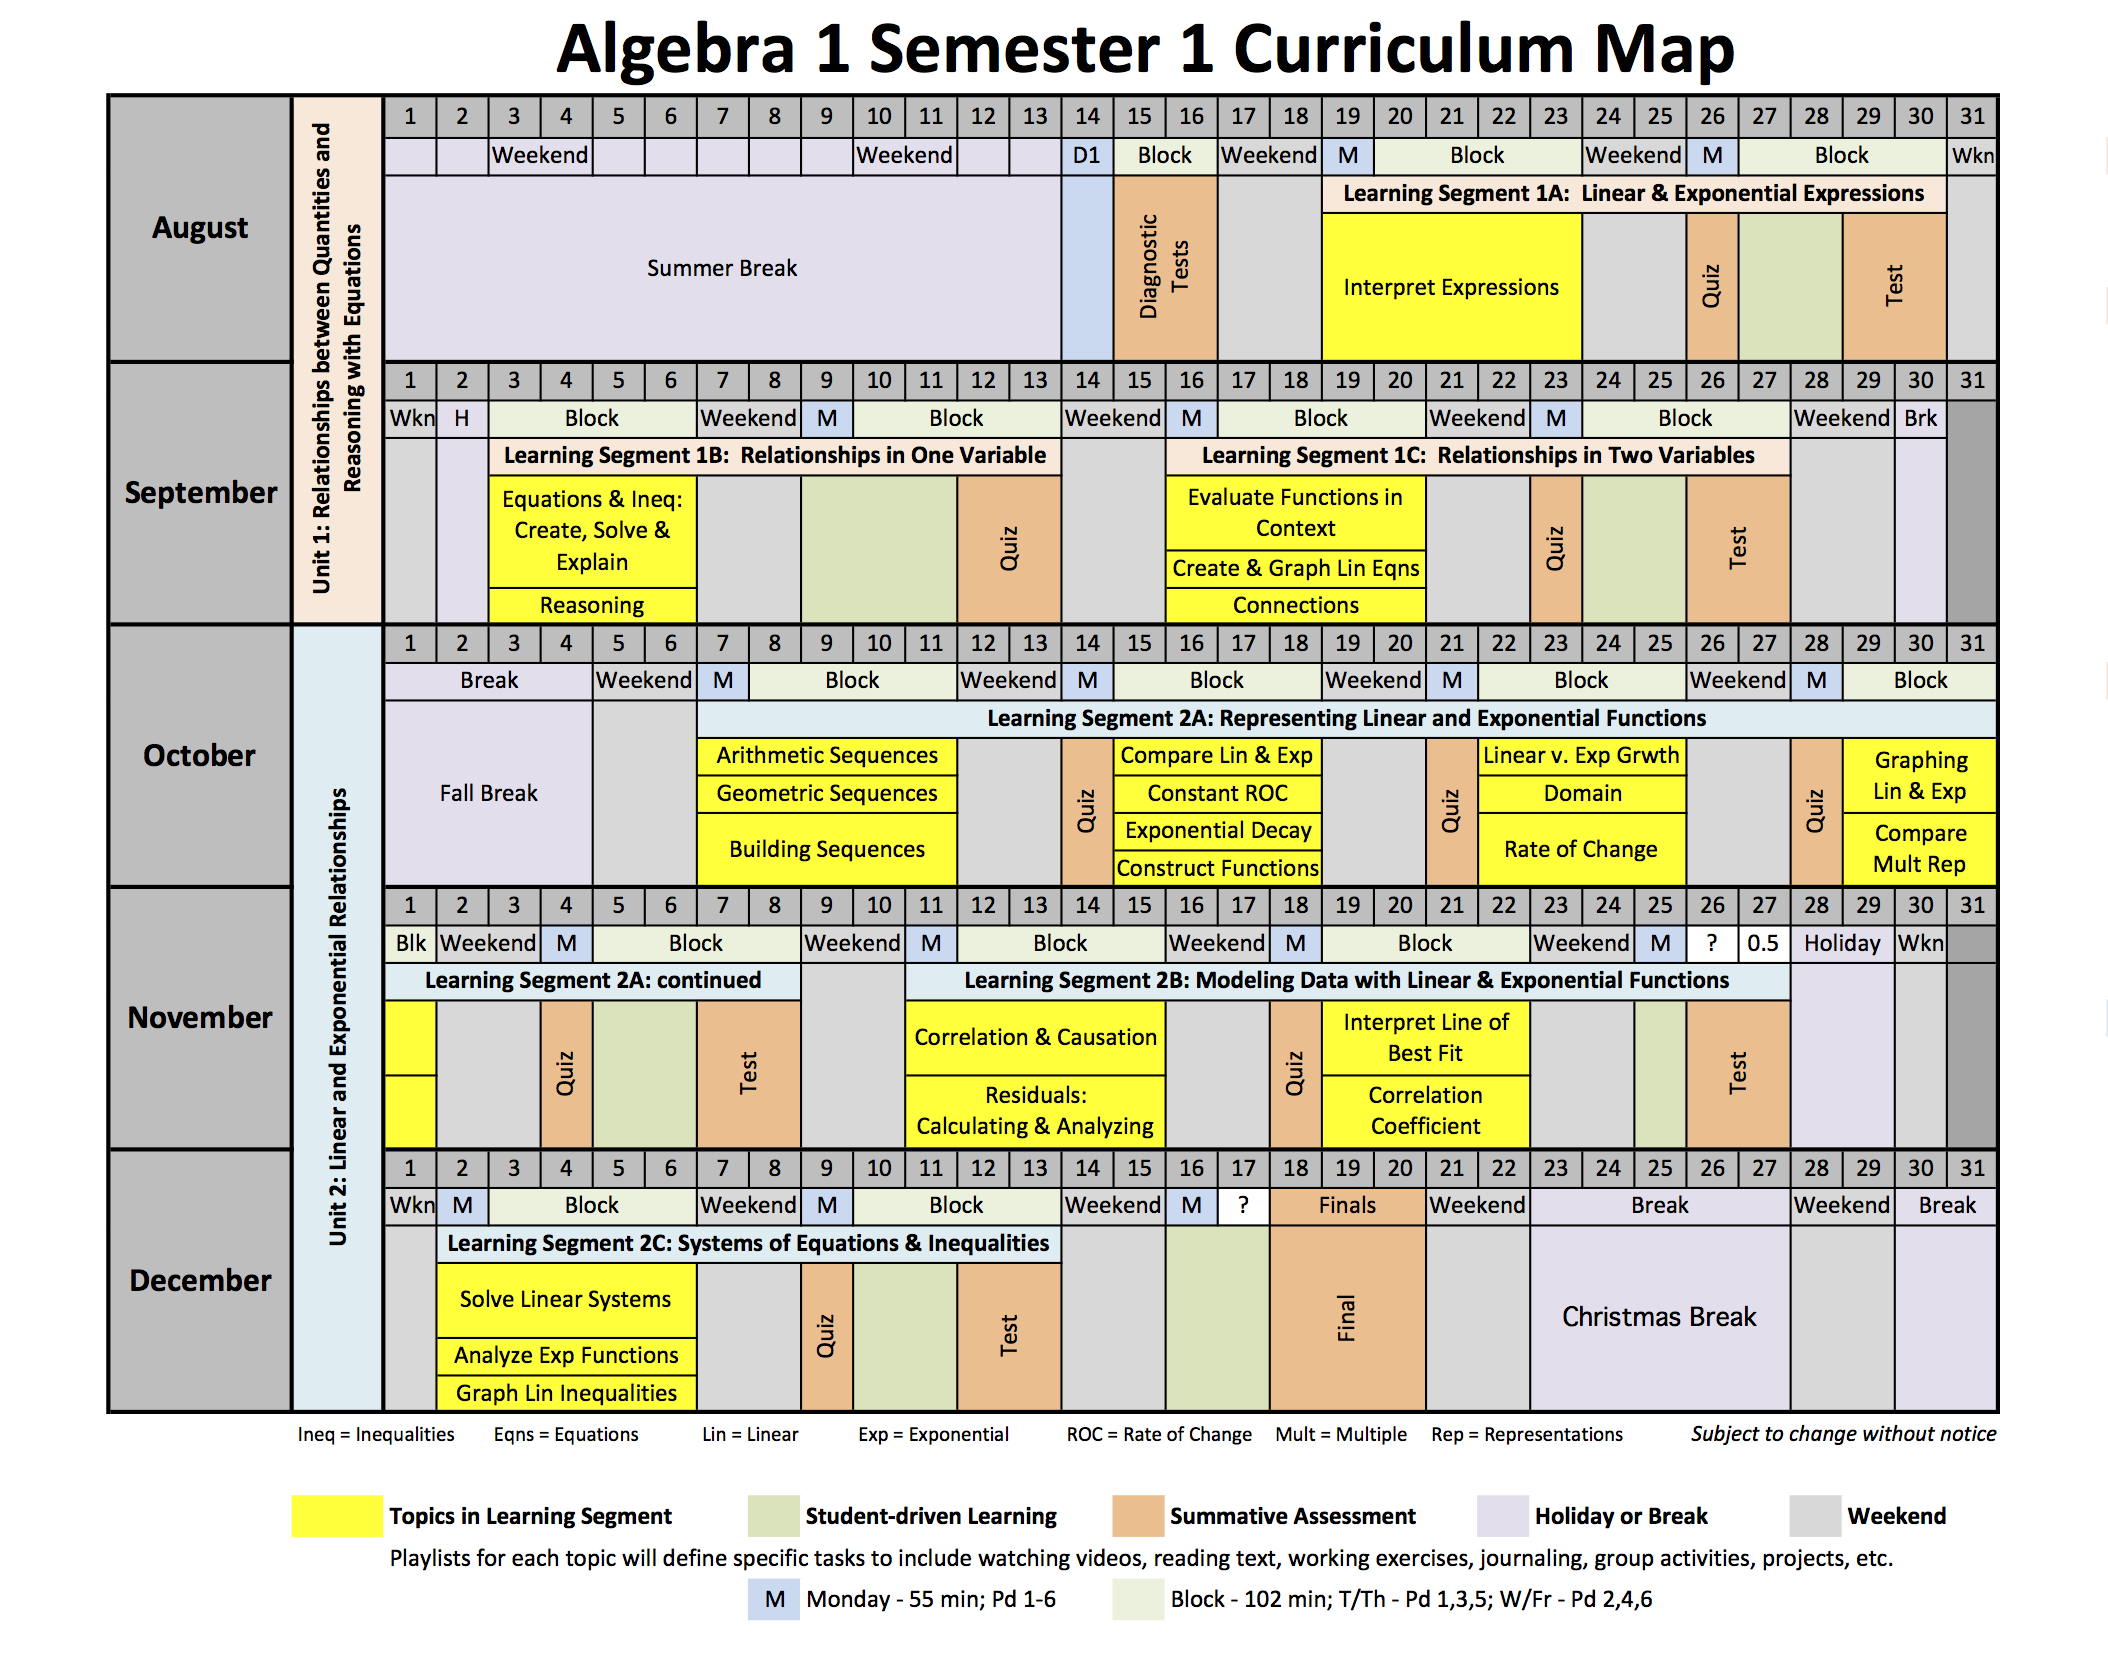 Careening towards my curriculum maps reflections of a second ccssm aligned algebra 1 curriculum map maxwellsz